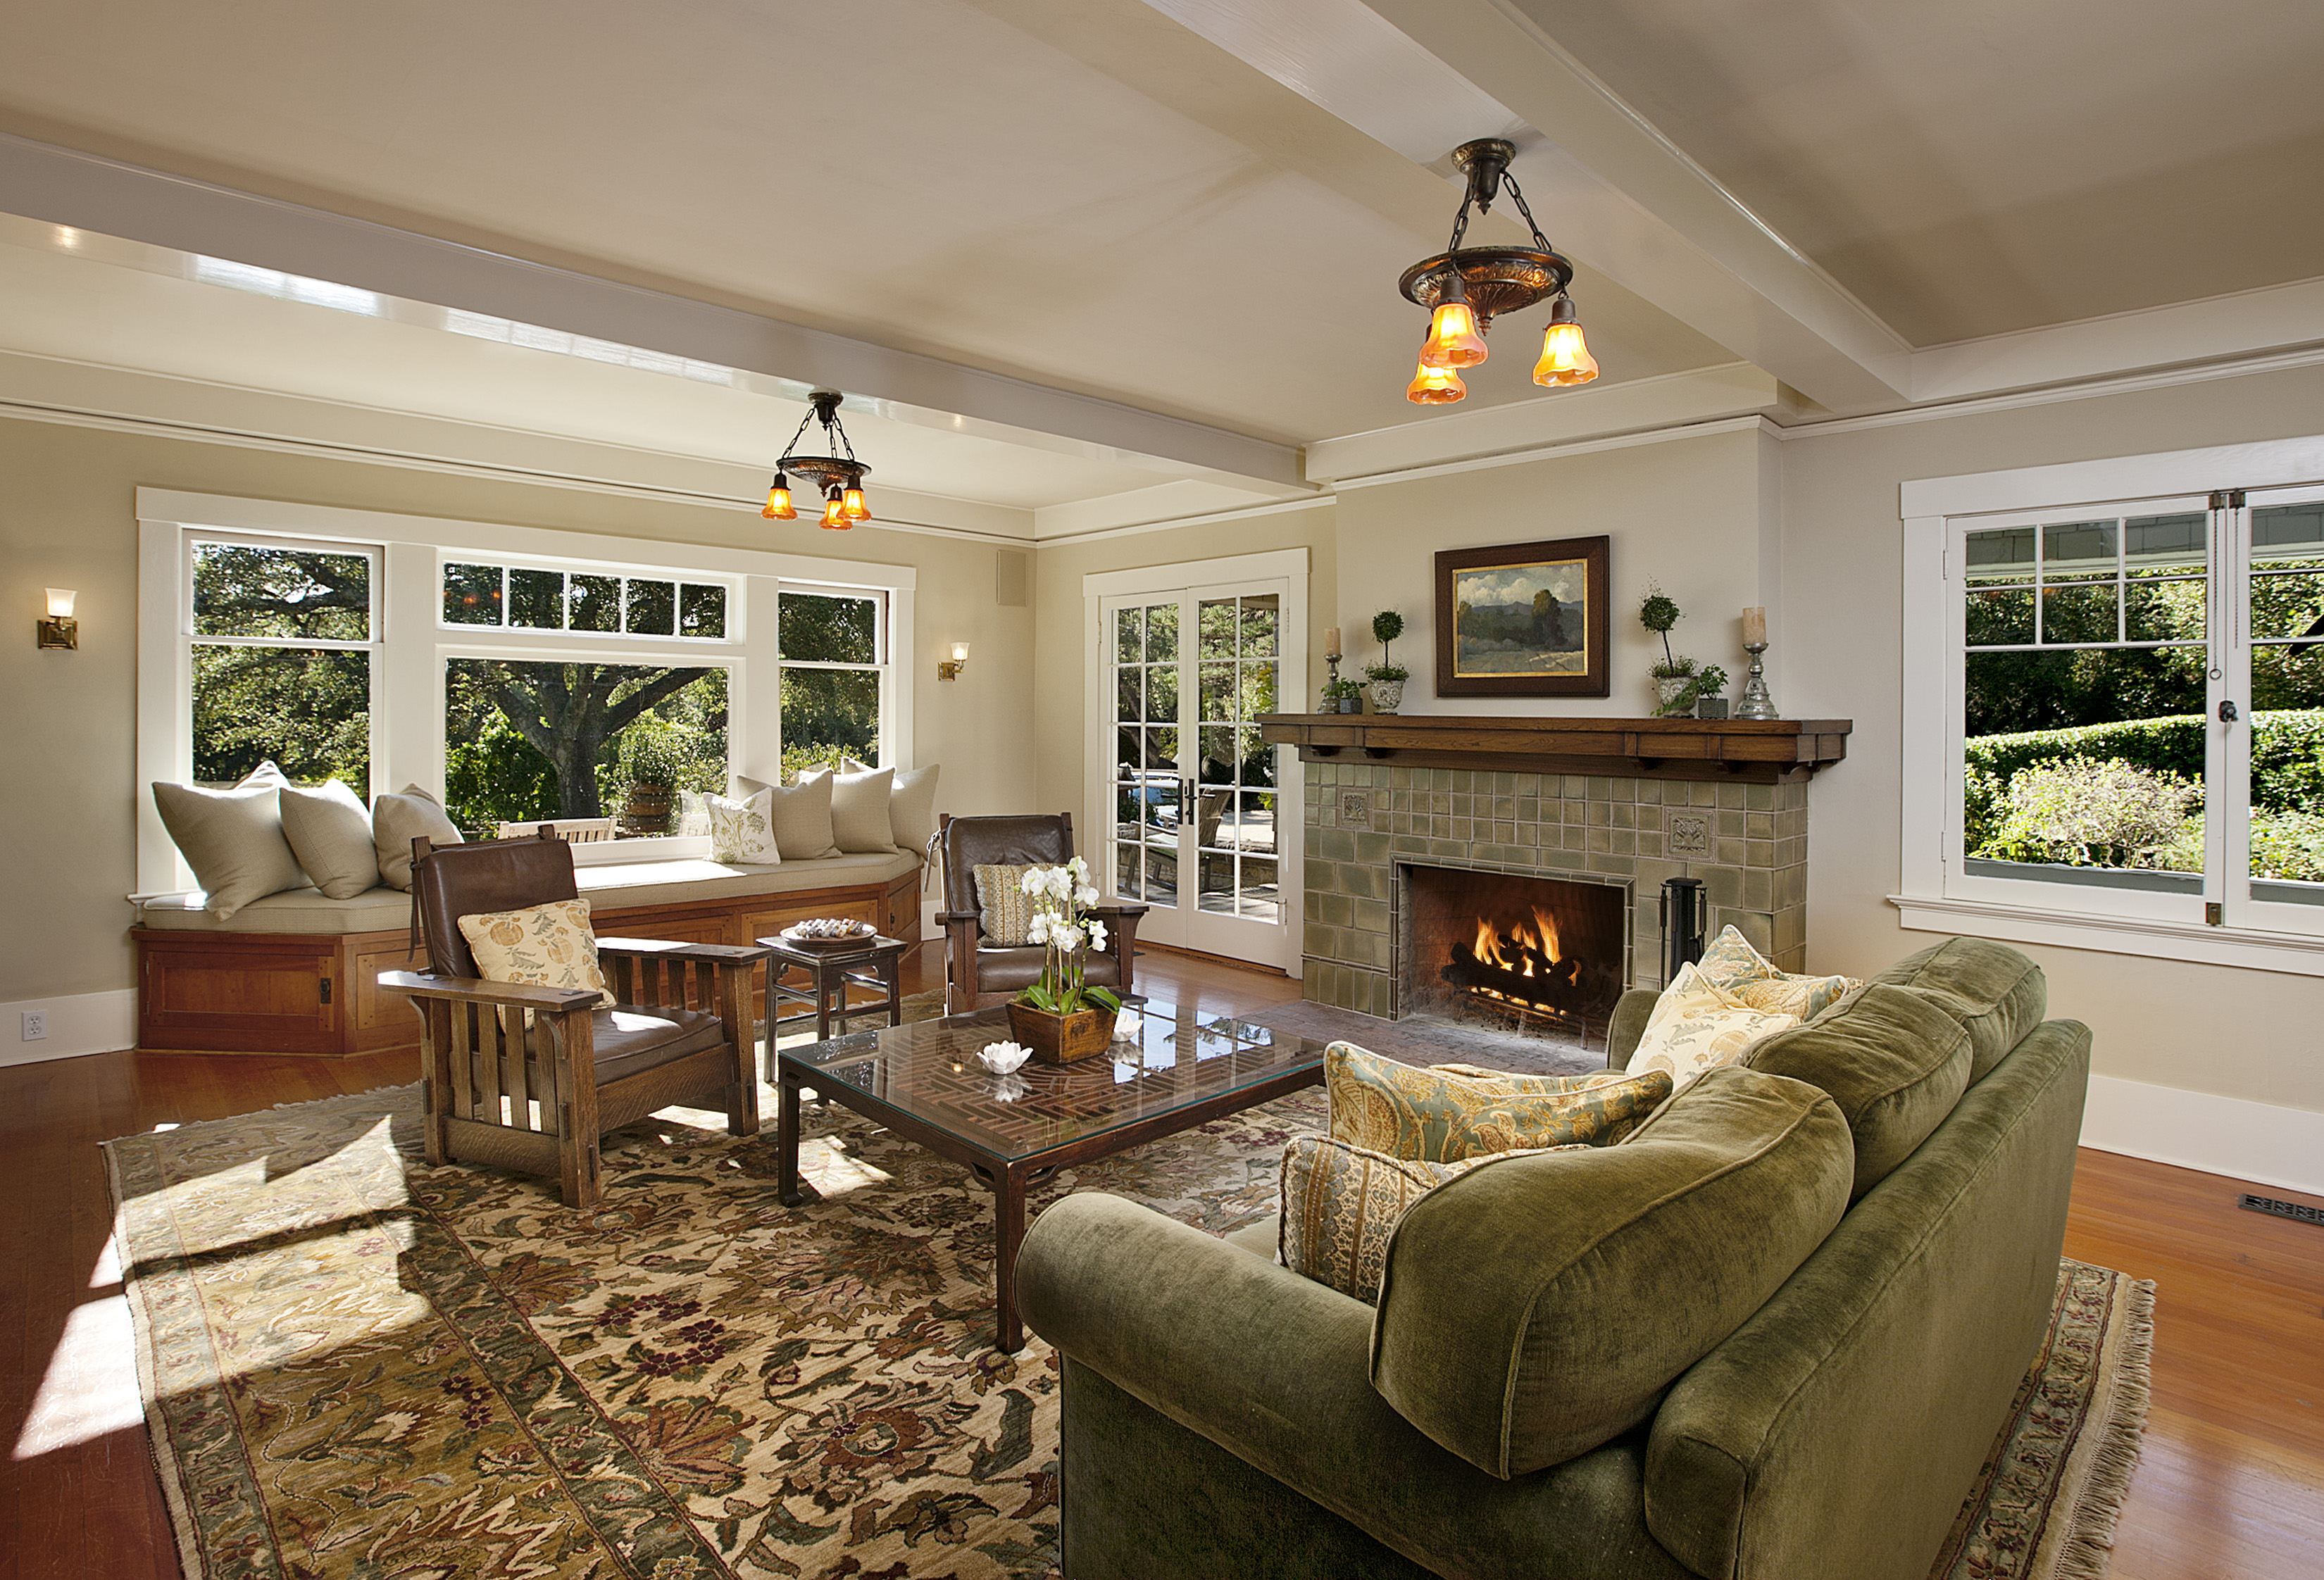 Craftsman Home Interior Design | Interior Decorating Las ... on